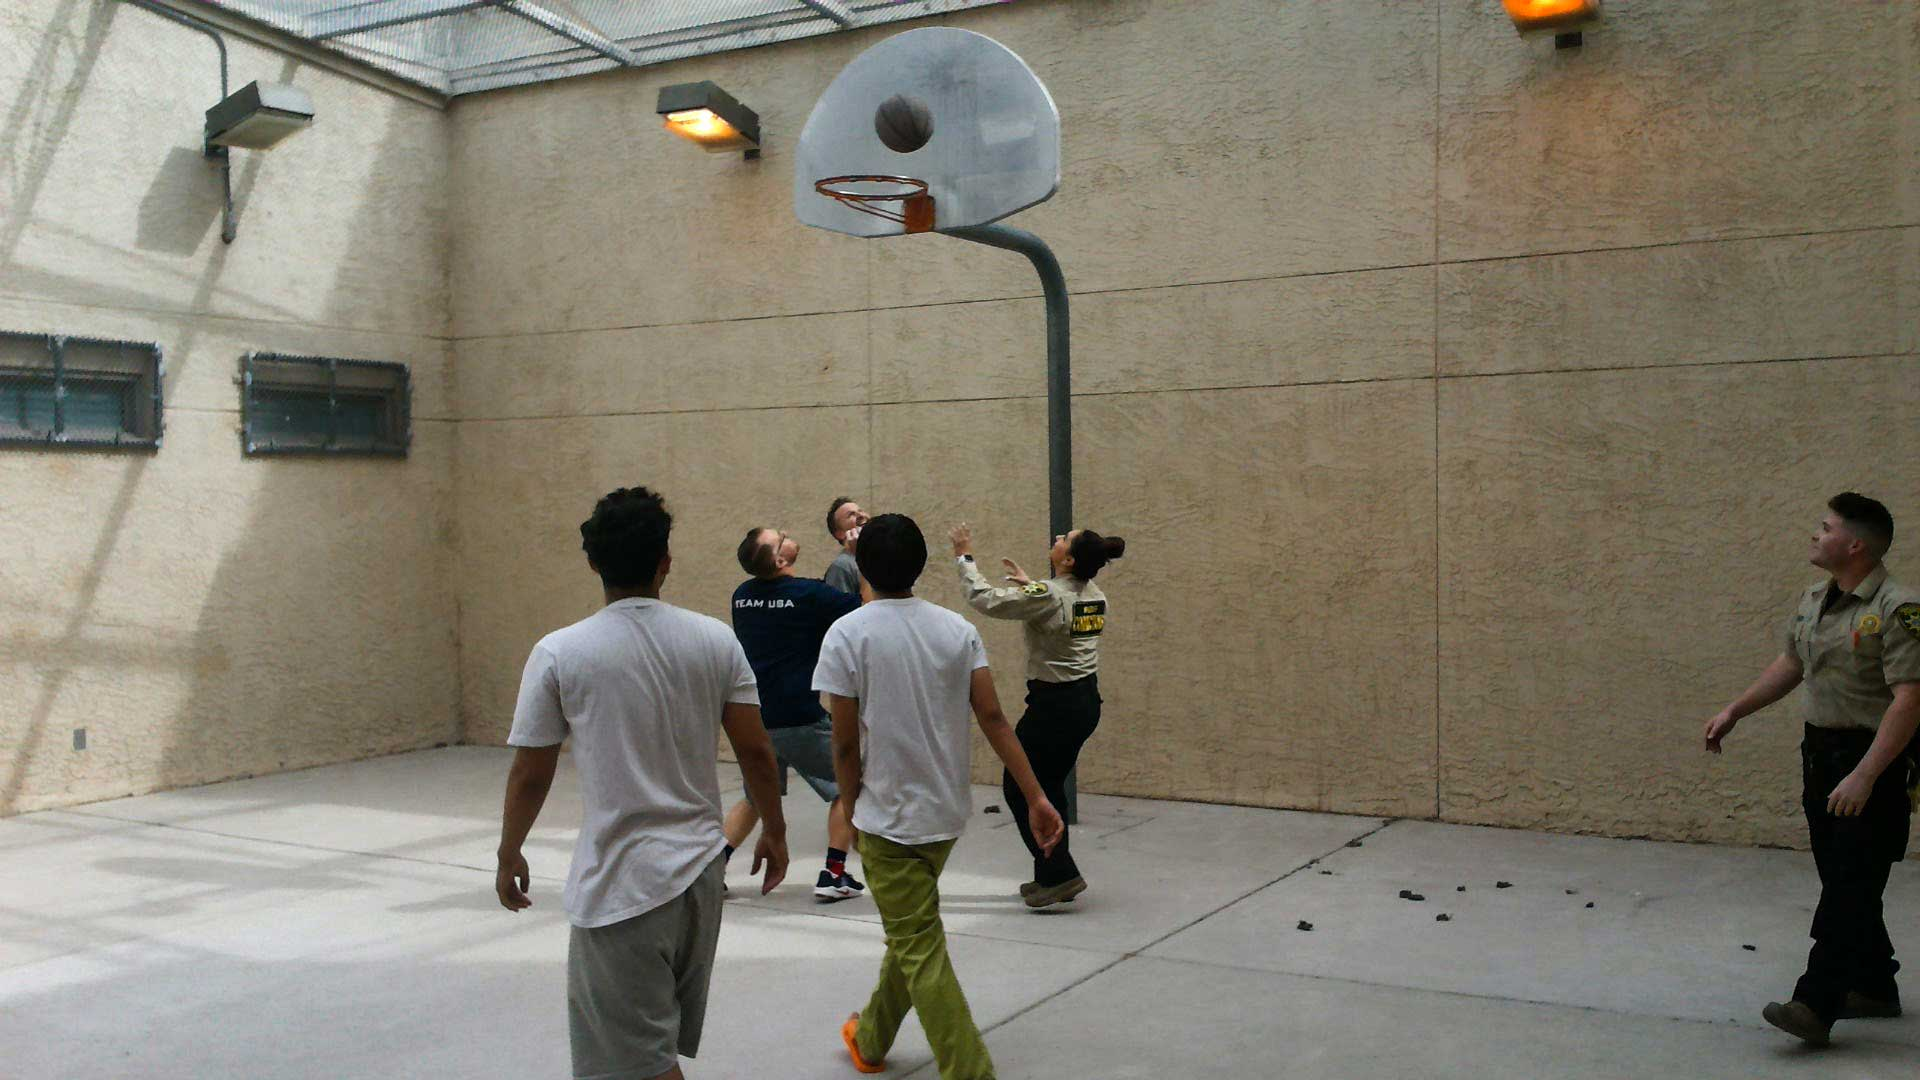 detention basketball